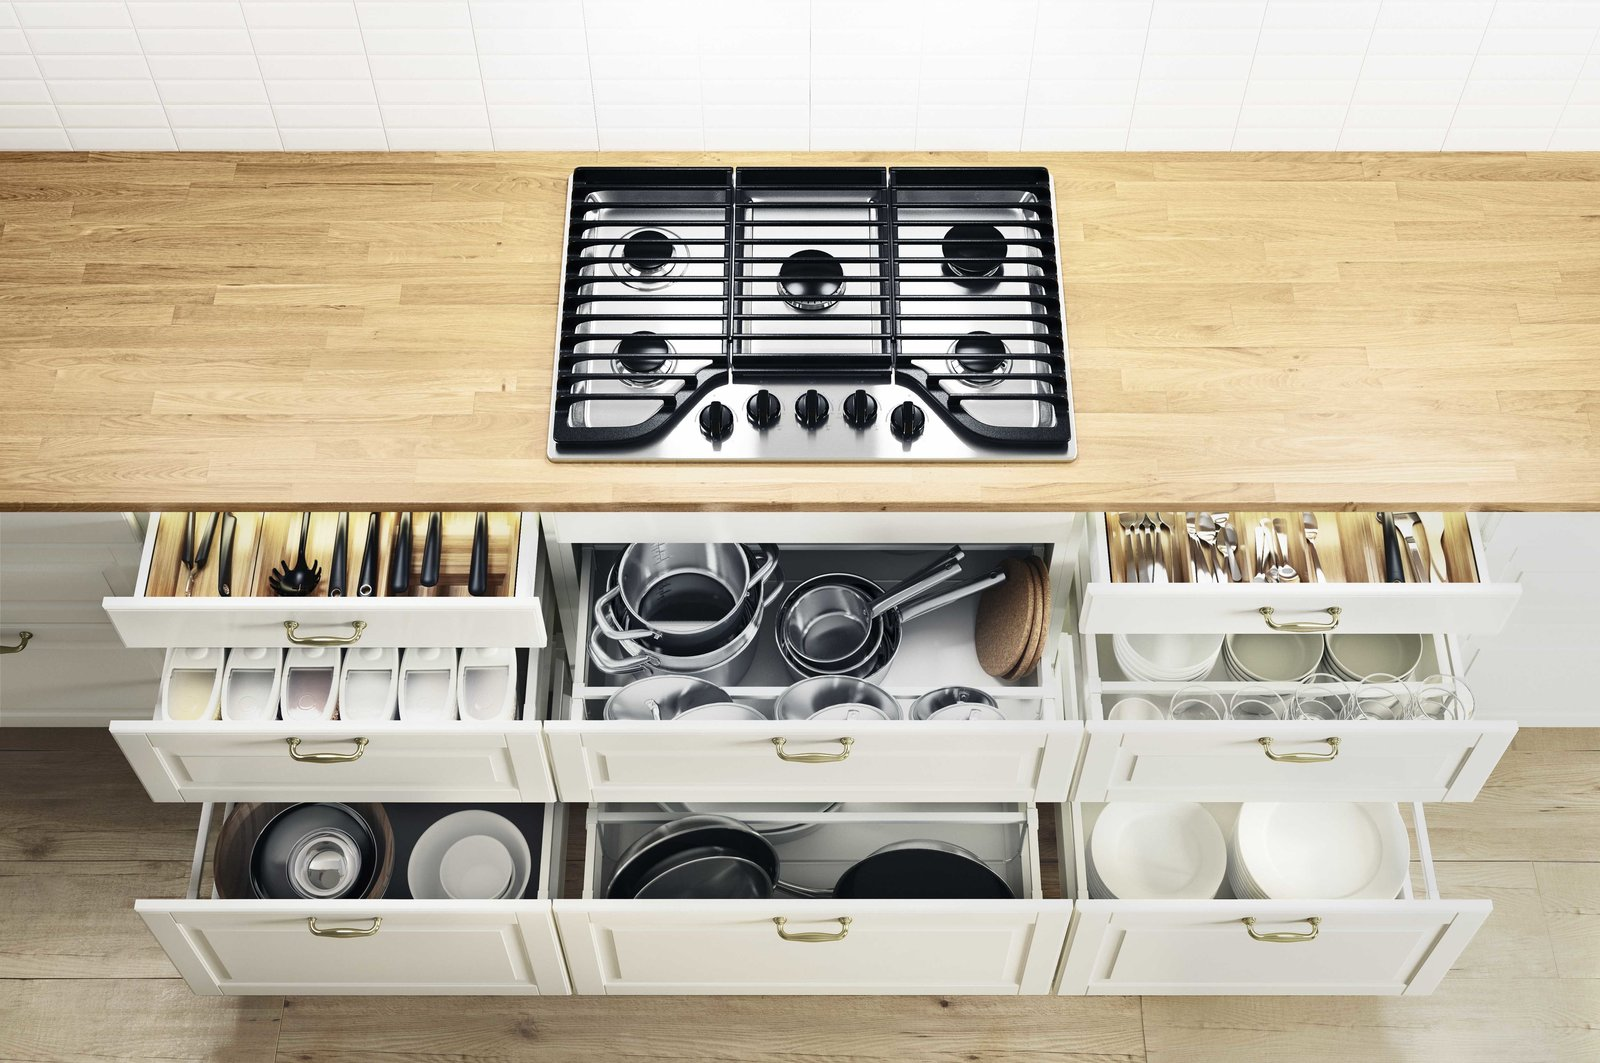 One of the system's best new features are the interior drawers, which can now be as detailed as the most expensive high-end systems, providing a place for everything with drawers for pots, knives, tablelinens, and dinnerware.